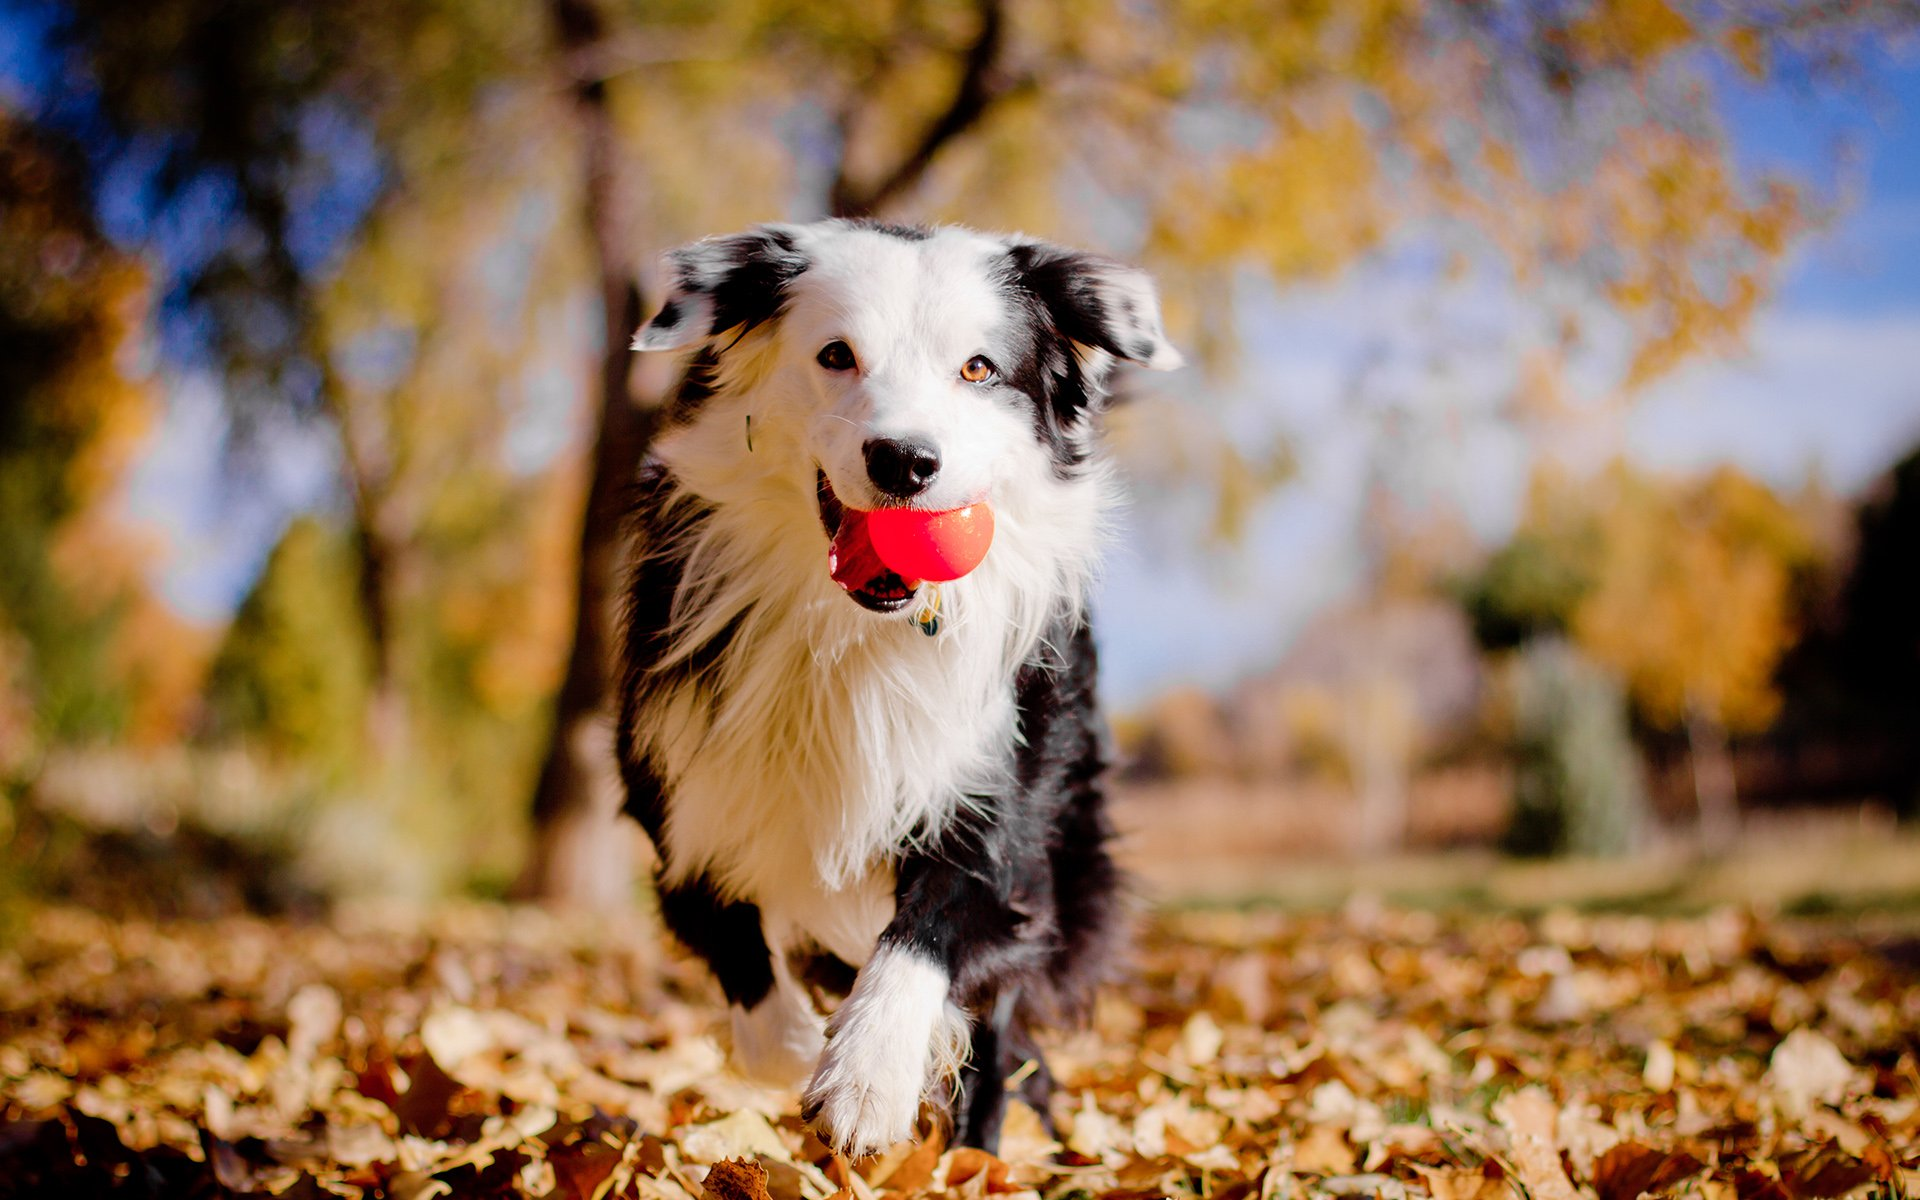 Dog Enjoying Autumn Season Photos Wallpapers